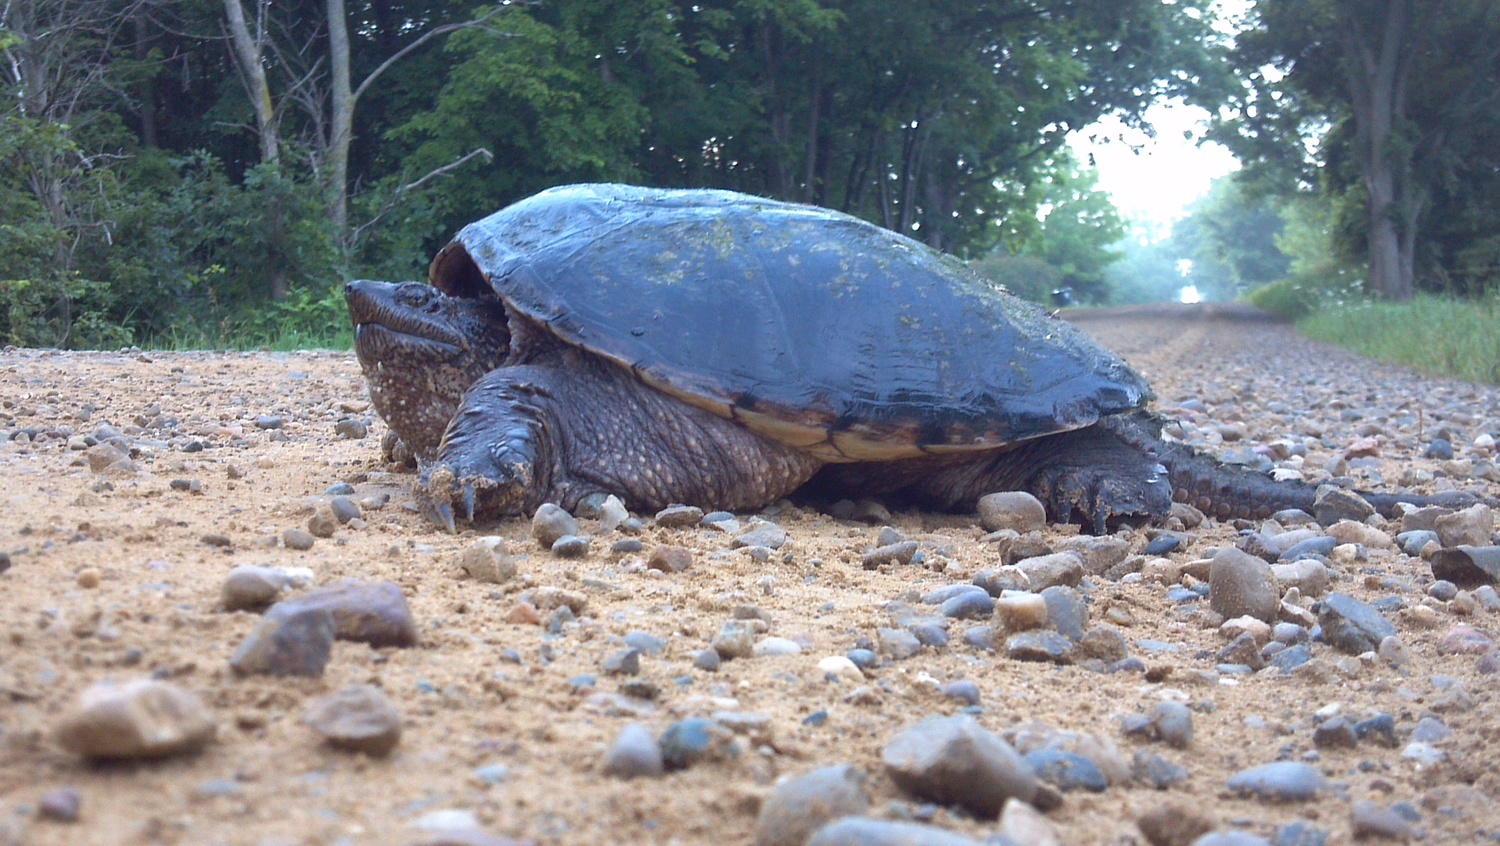 Photo Larry Atkins - Female Snapping Turtle